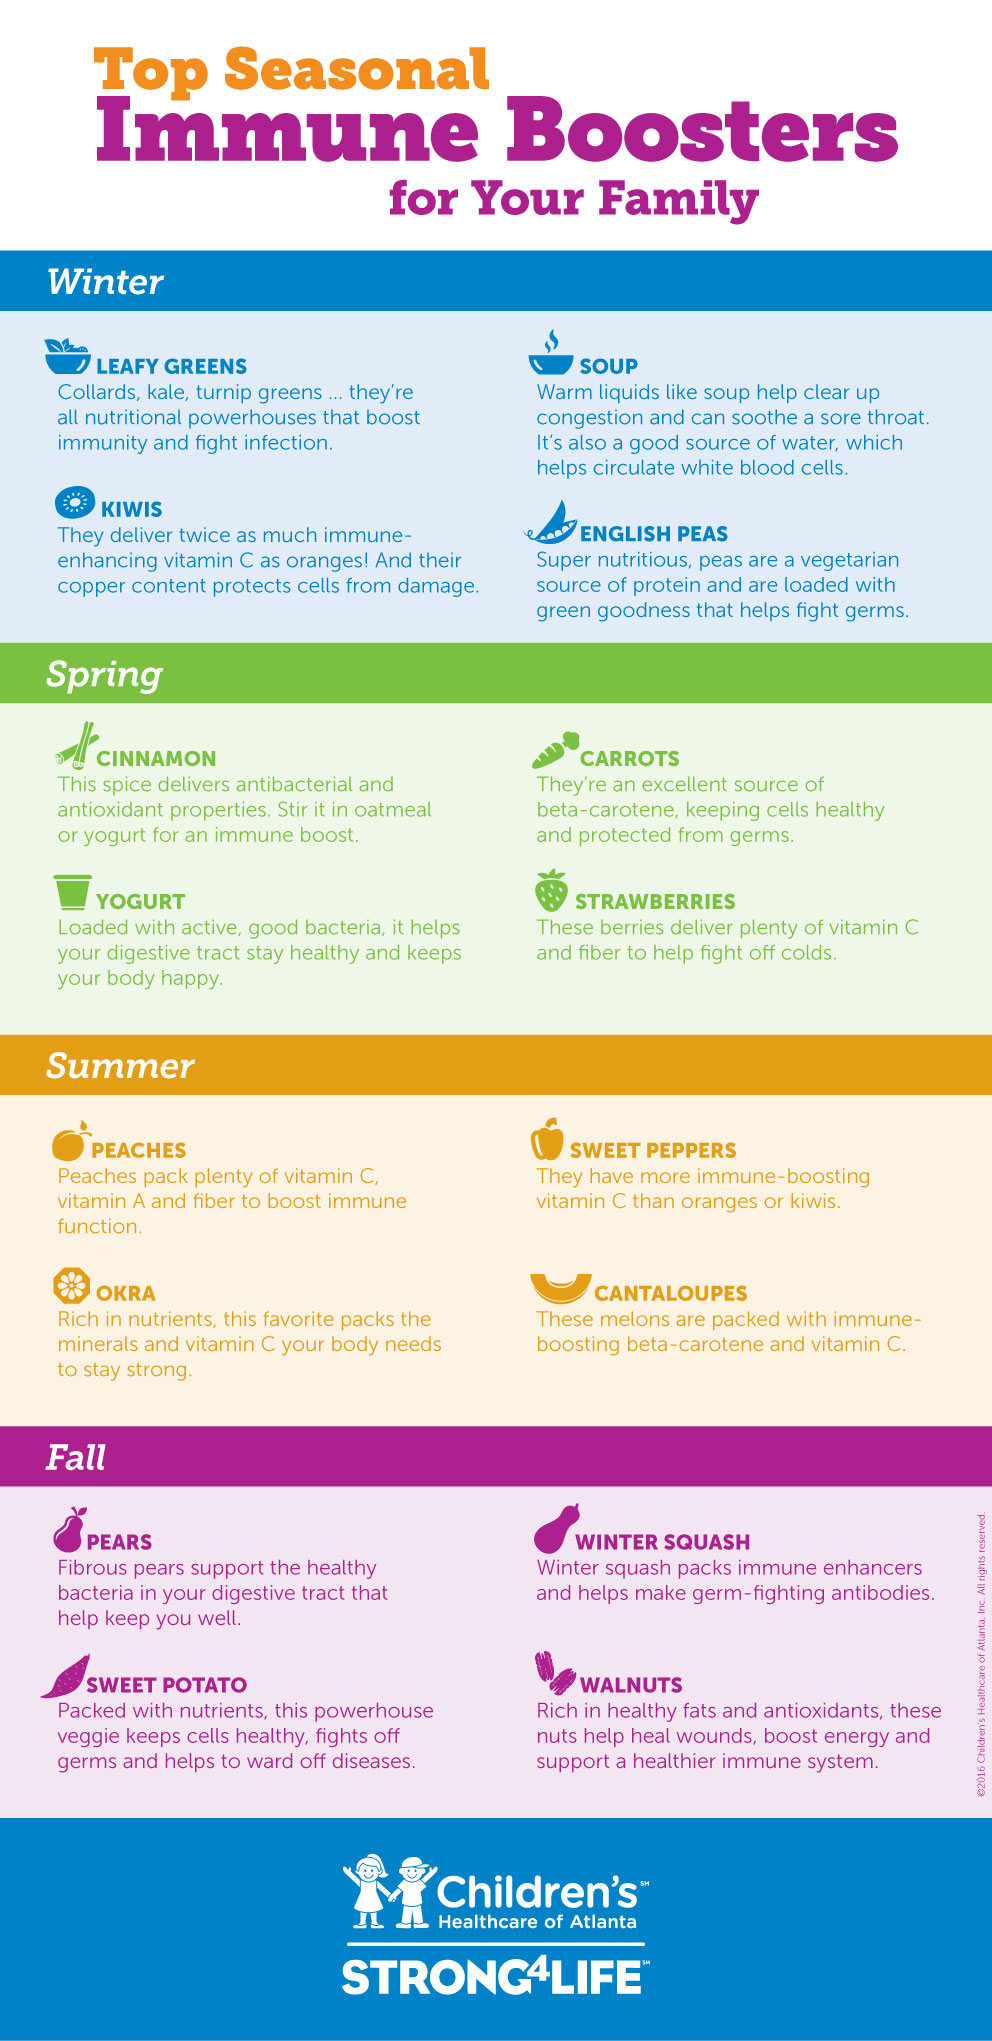 Seasonal immune boosters infographic